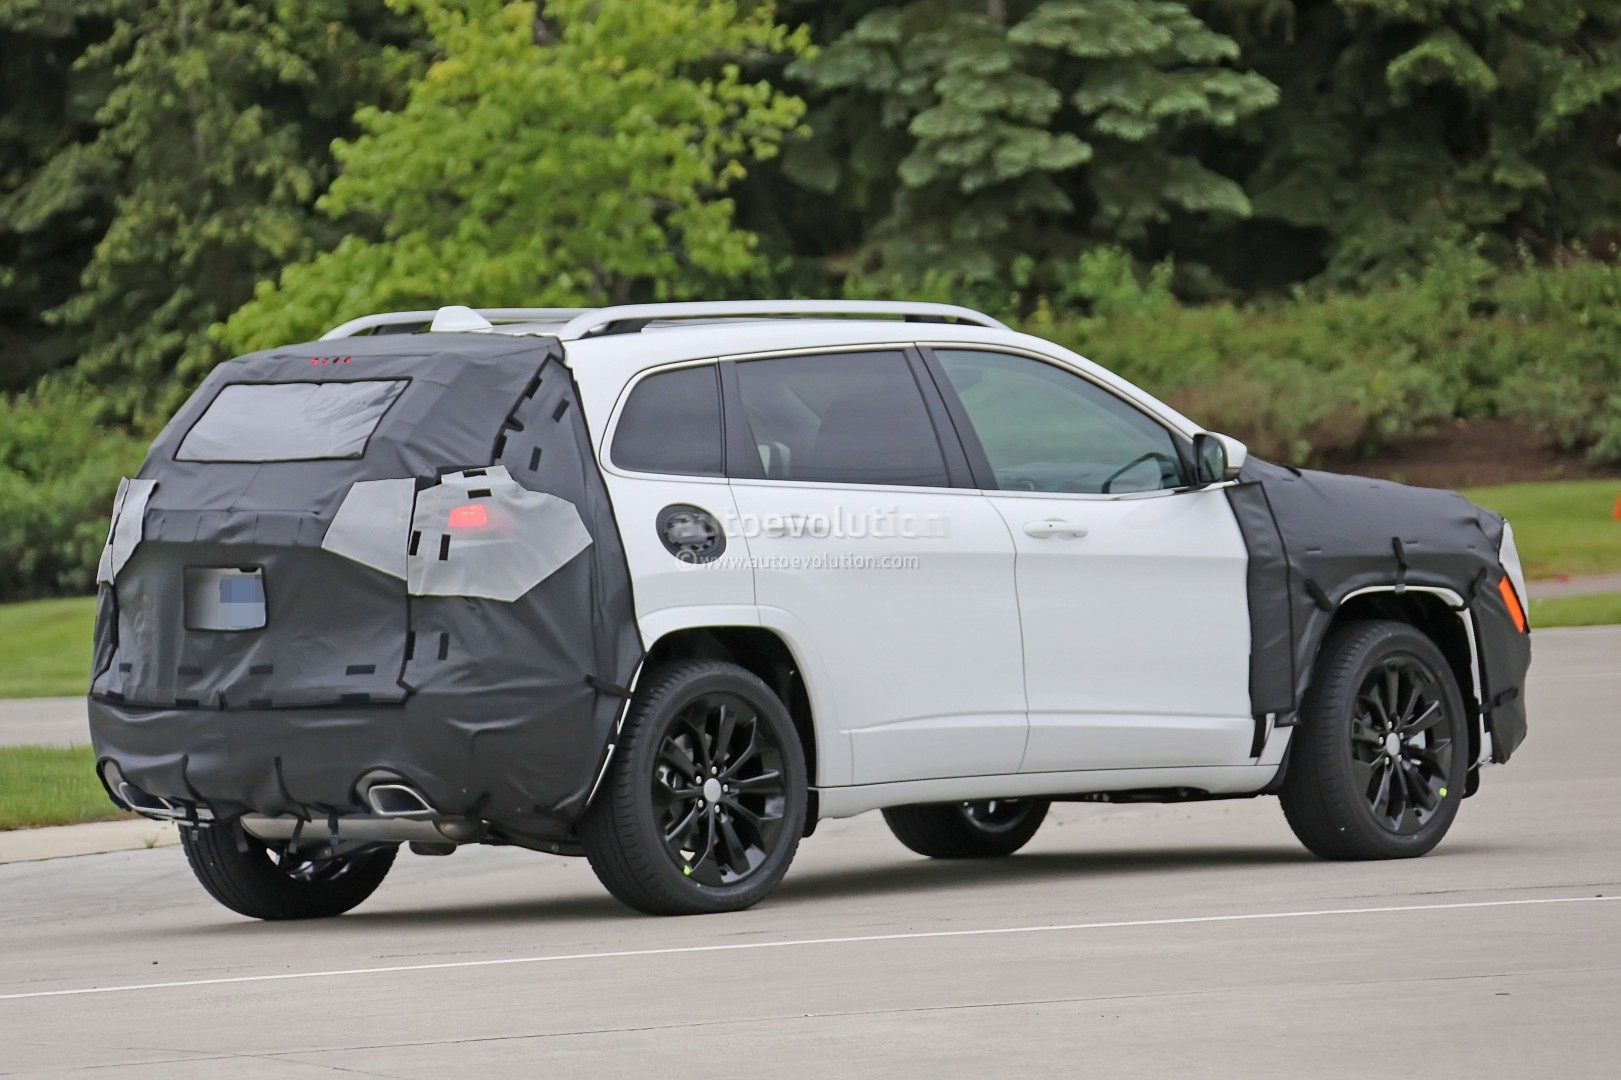 Maxresdefault as well Jeep Grand Cherokee together with Tesla Model S Interieur additionally Jeep Cherokee Limited Diesel Bright White besides Jeep Cherokee Console. on trackhawk jeep grand cherokee